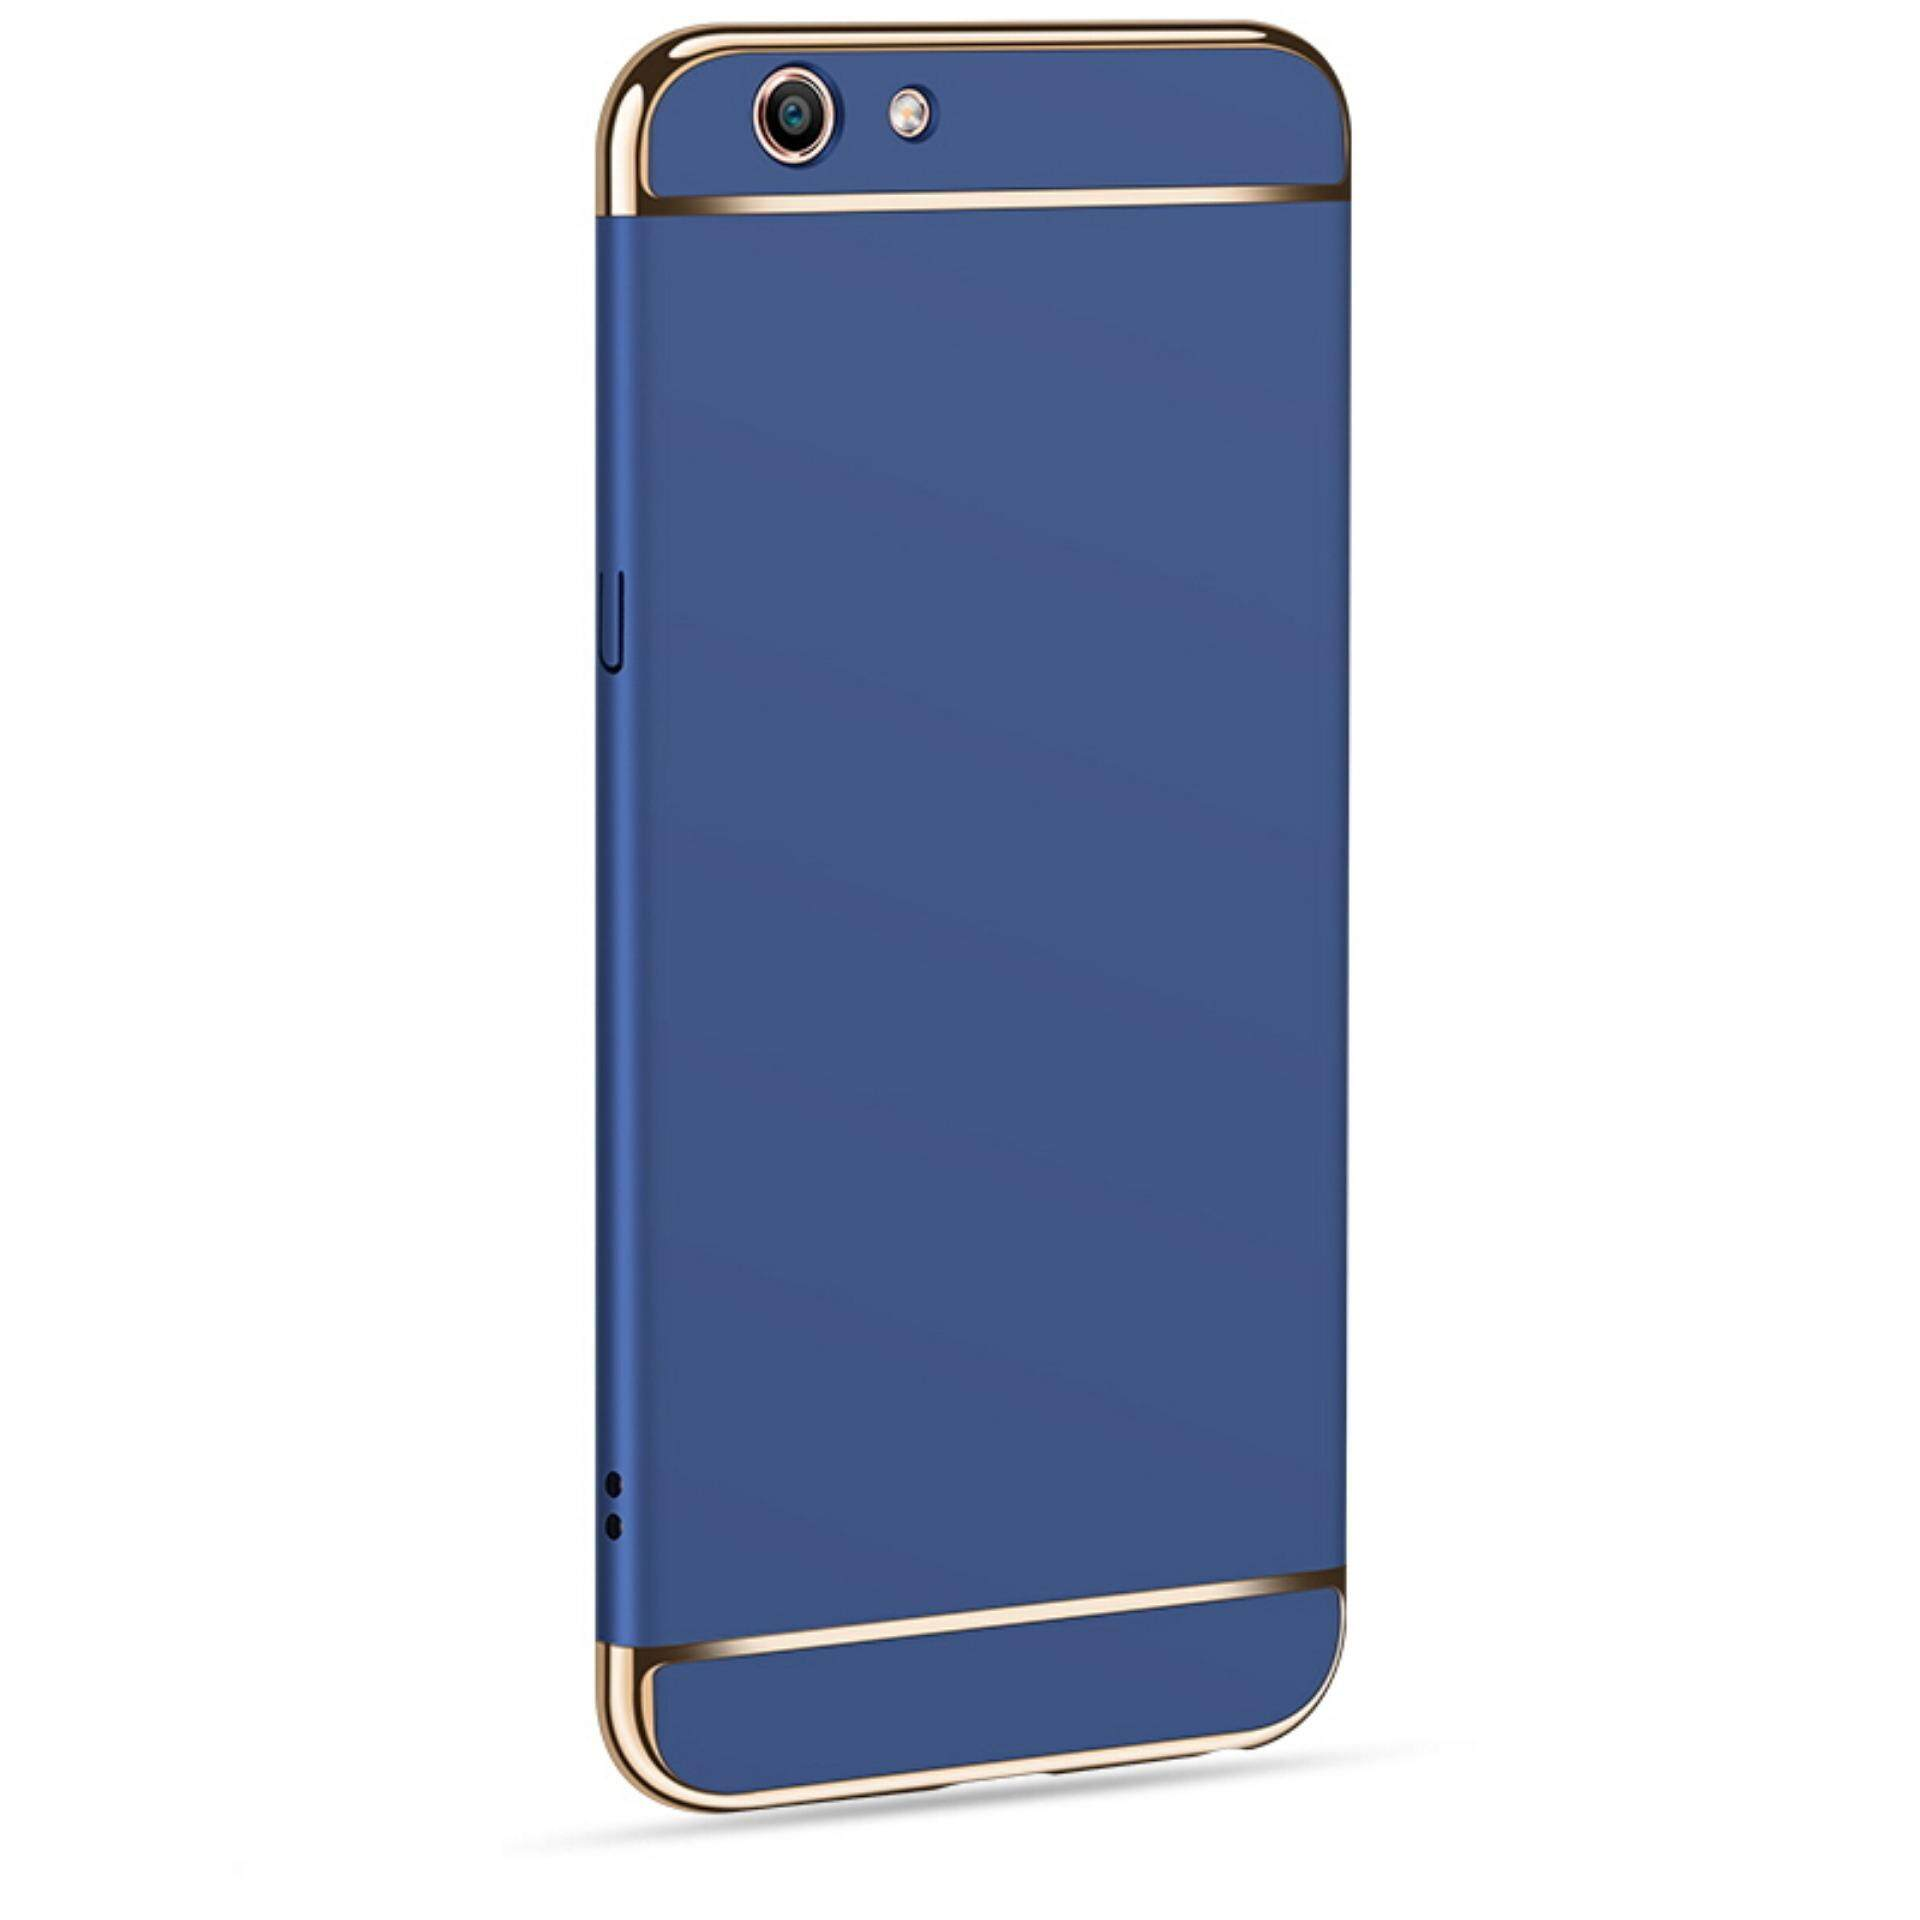 POPO BALL 3in1 Ultra-thin Electroplated PC Back Cover Case for Vivo Y53MYR32. MYR